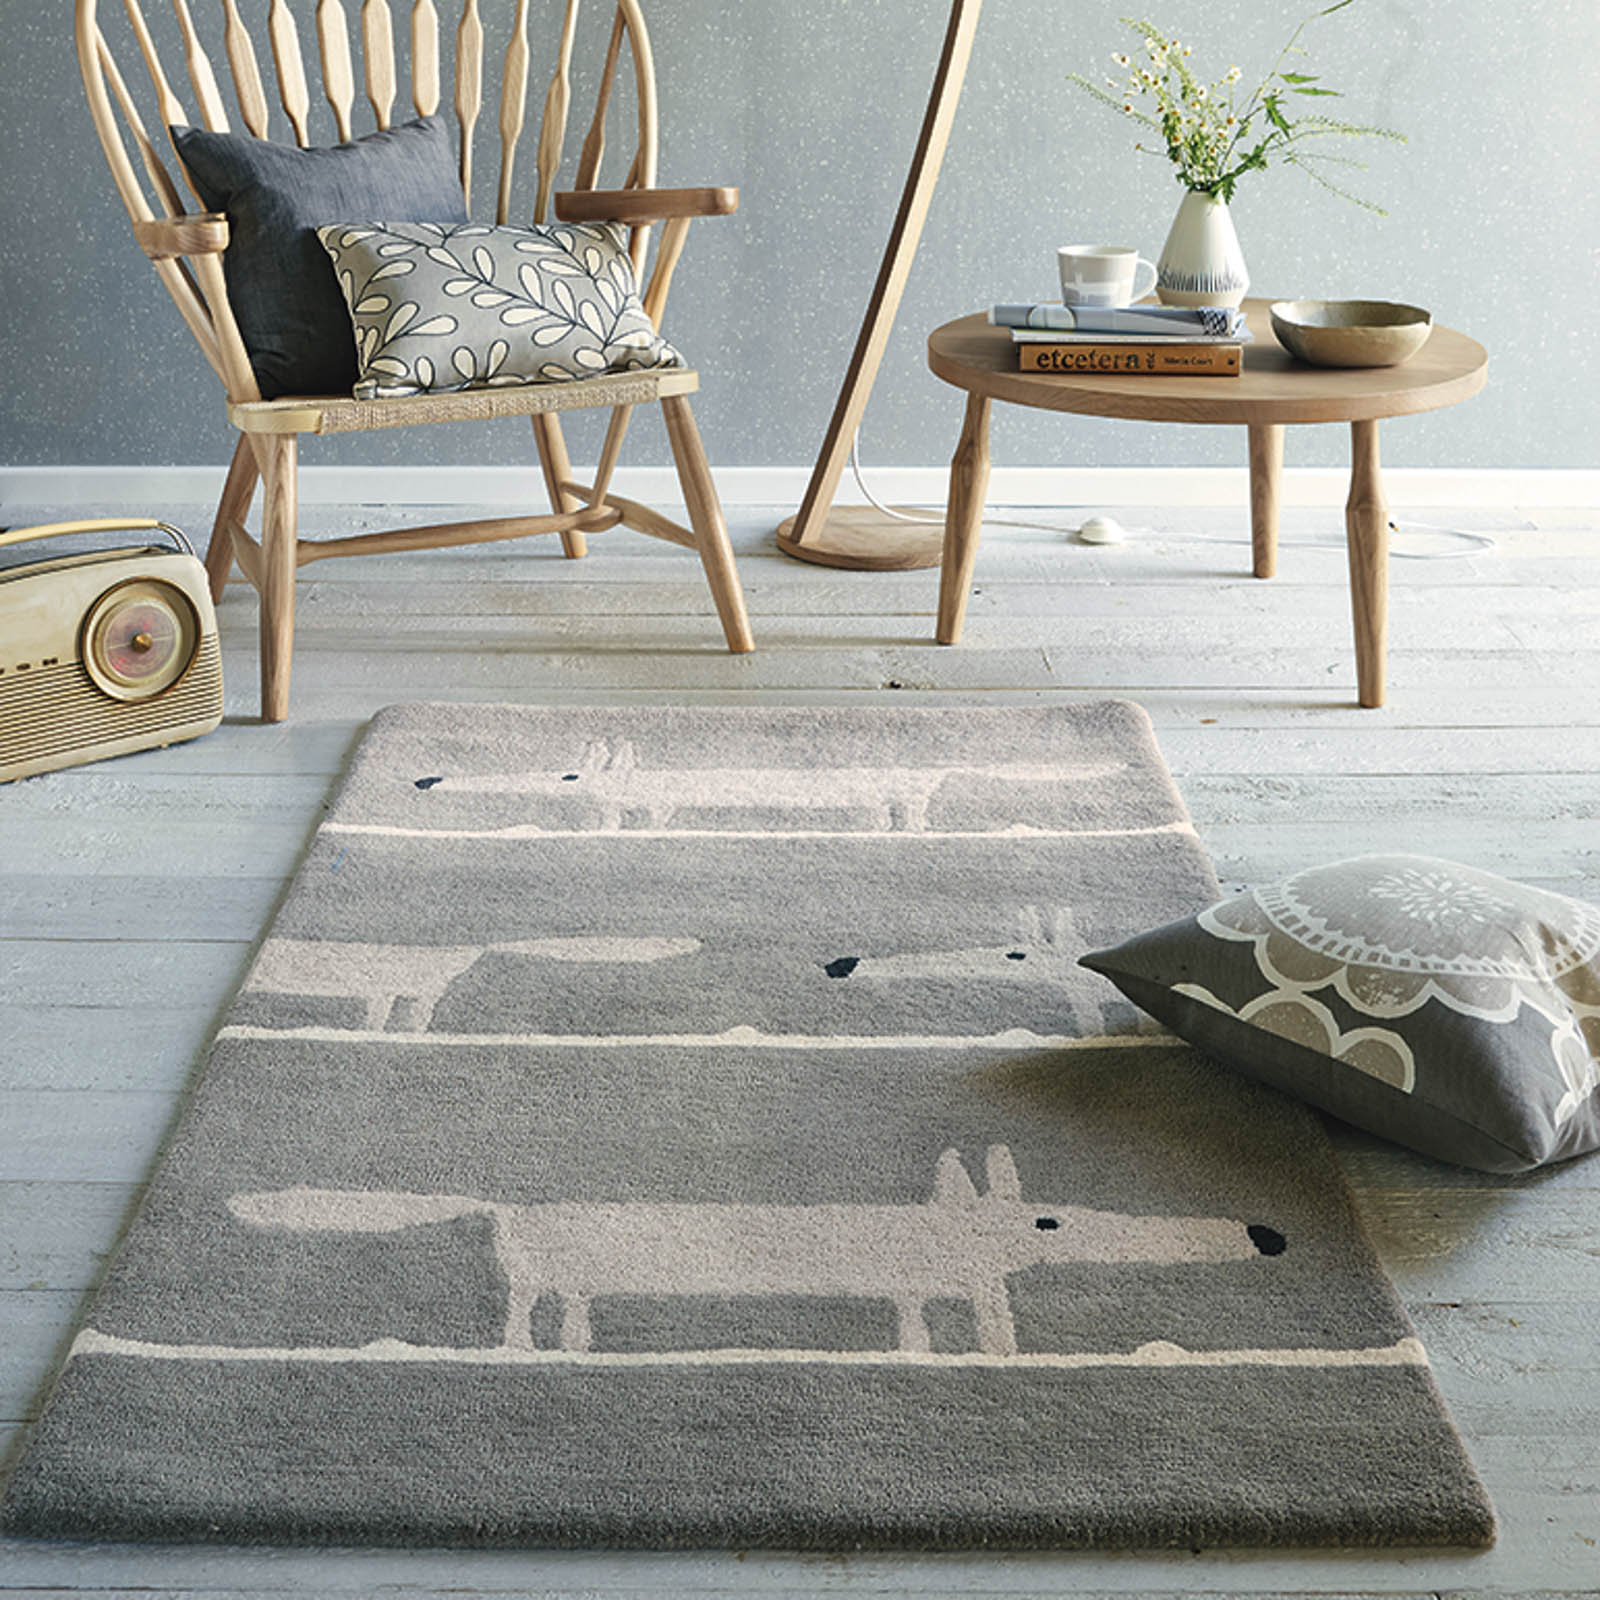 Mr Fox Rugs 25304 Silver by Scion